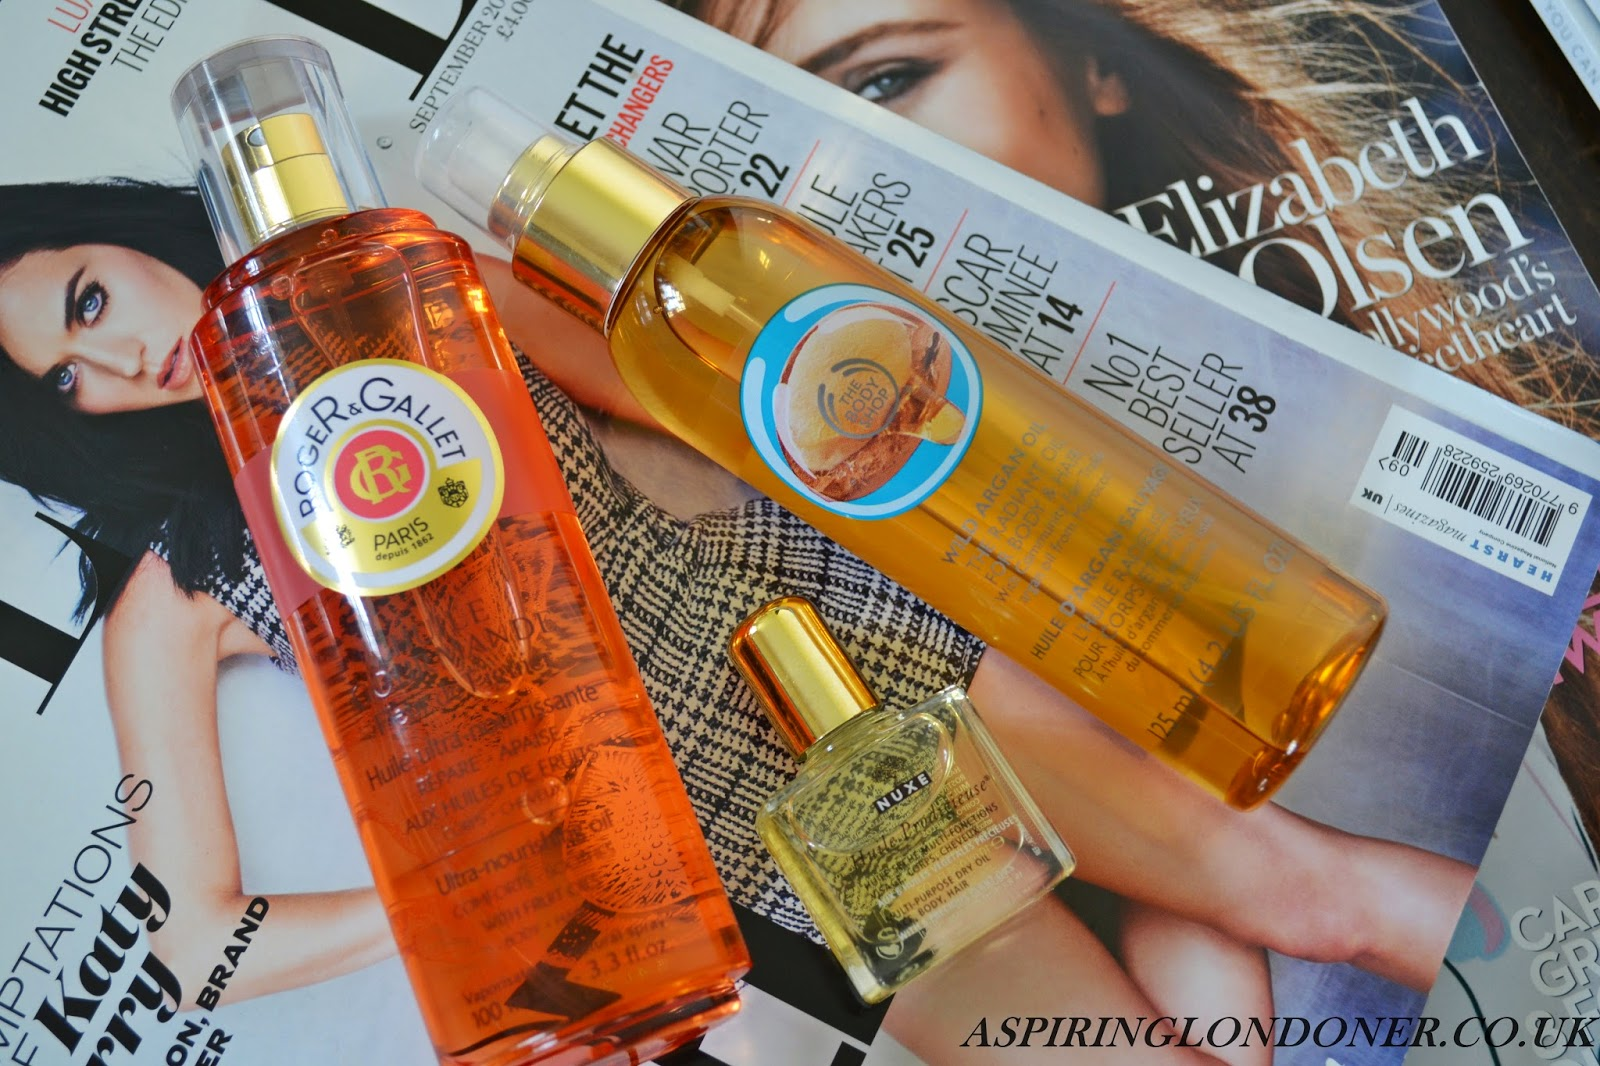 Dry Oils ft. Roger & Gallet Ultra Nourishing Fig Oil, The Body Shop Argan Oil Radiant Oil & Nuxe Multi-Usage Dry Oil - Aspiring Londoner